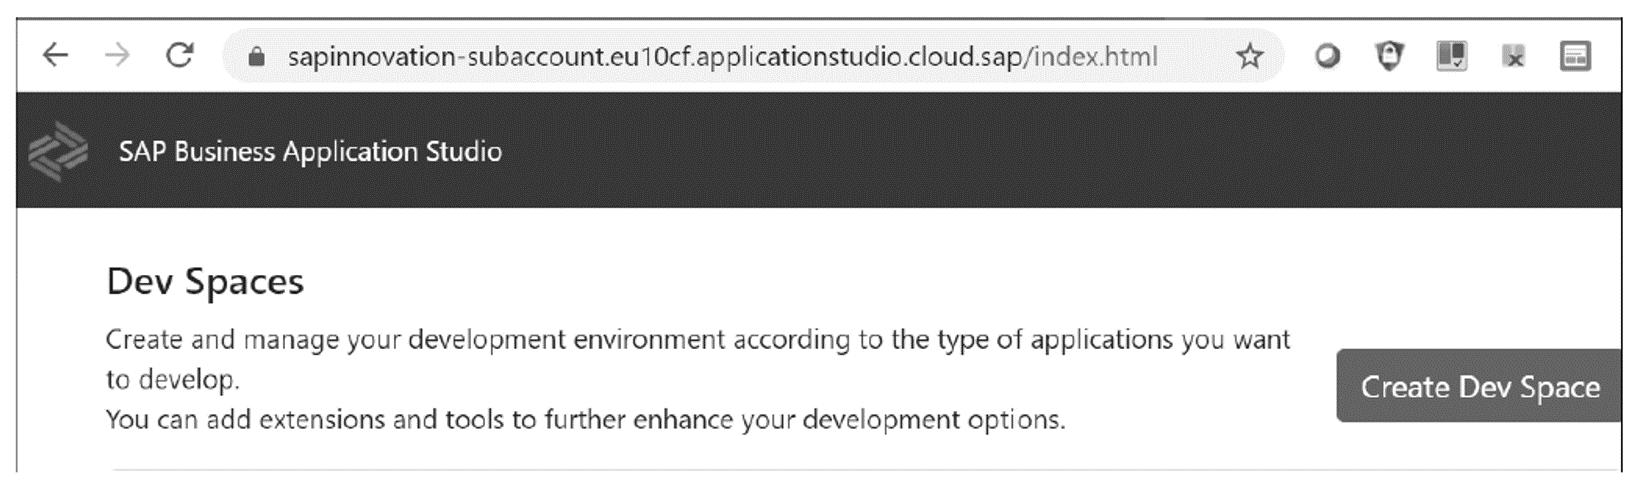 SAP Business Application Studio: Initial Page